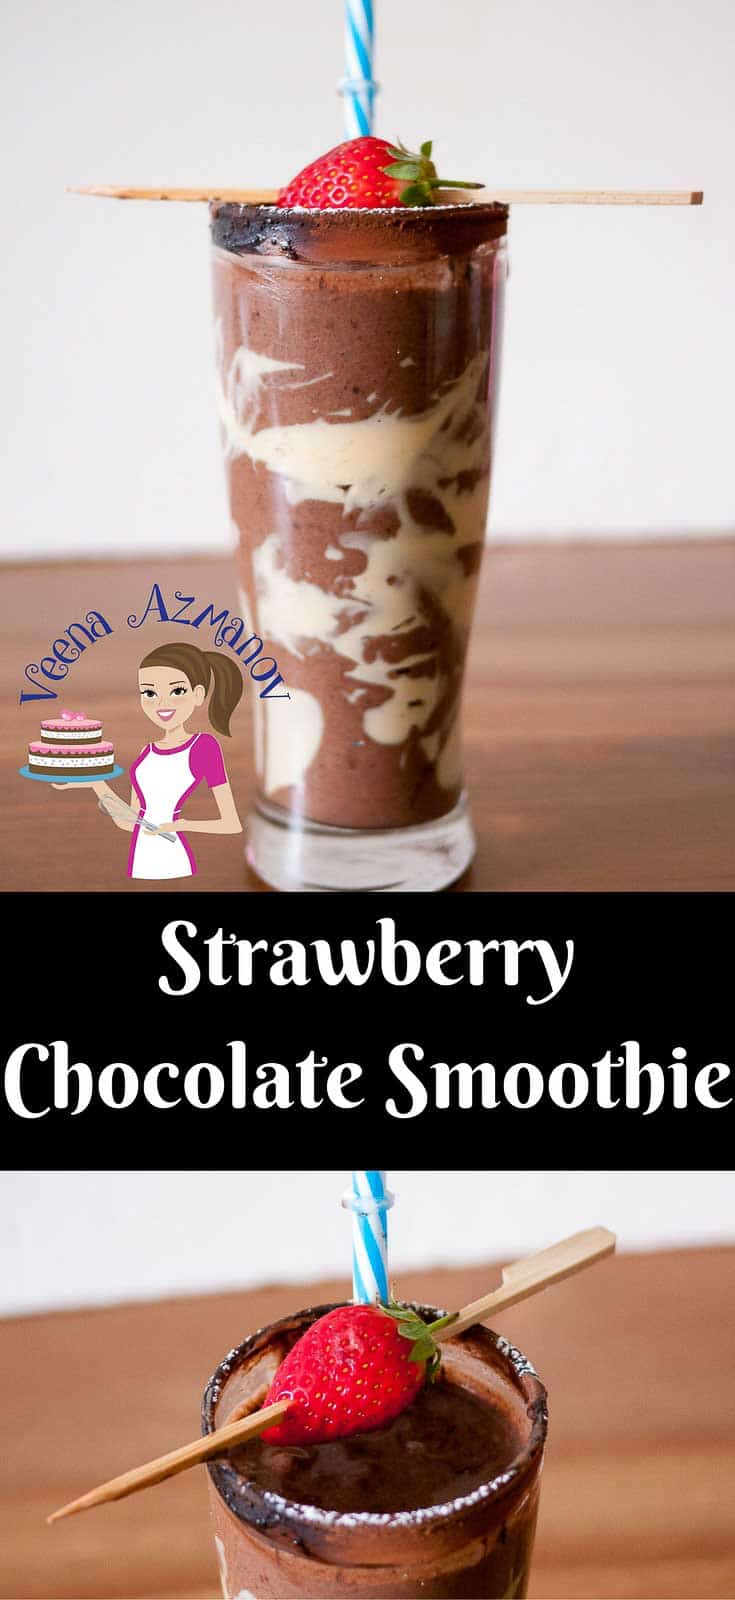 Strawberry Chocolate Smoothie Recipe - Veena Azmanov